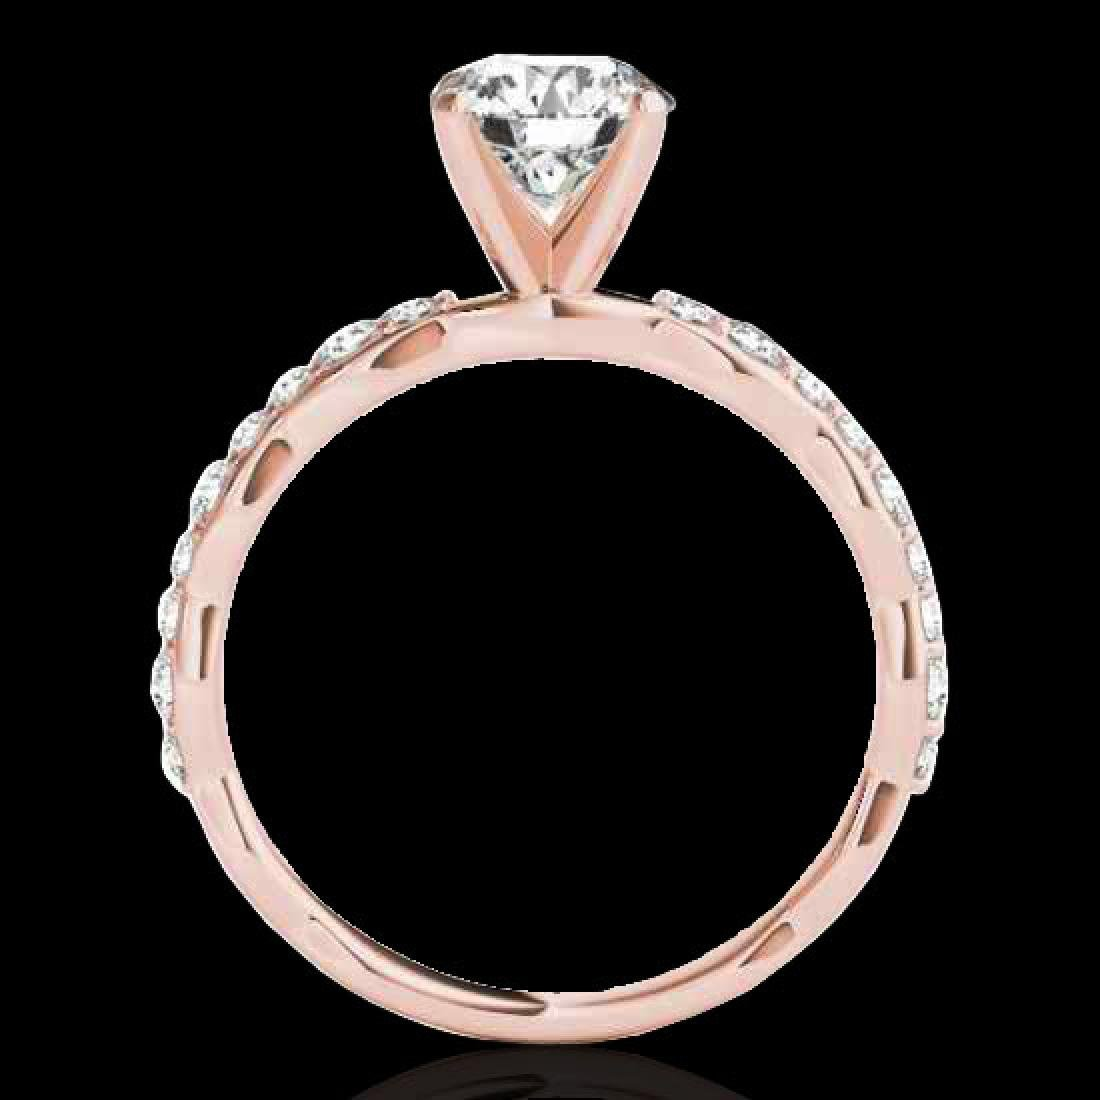 1.4 CTW H-SI/I Certified Diamond Solitaire Ring 10K - 2